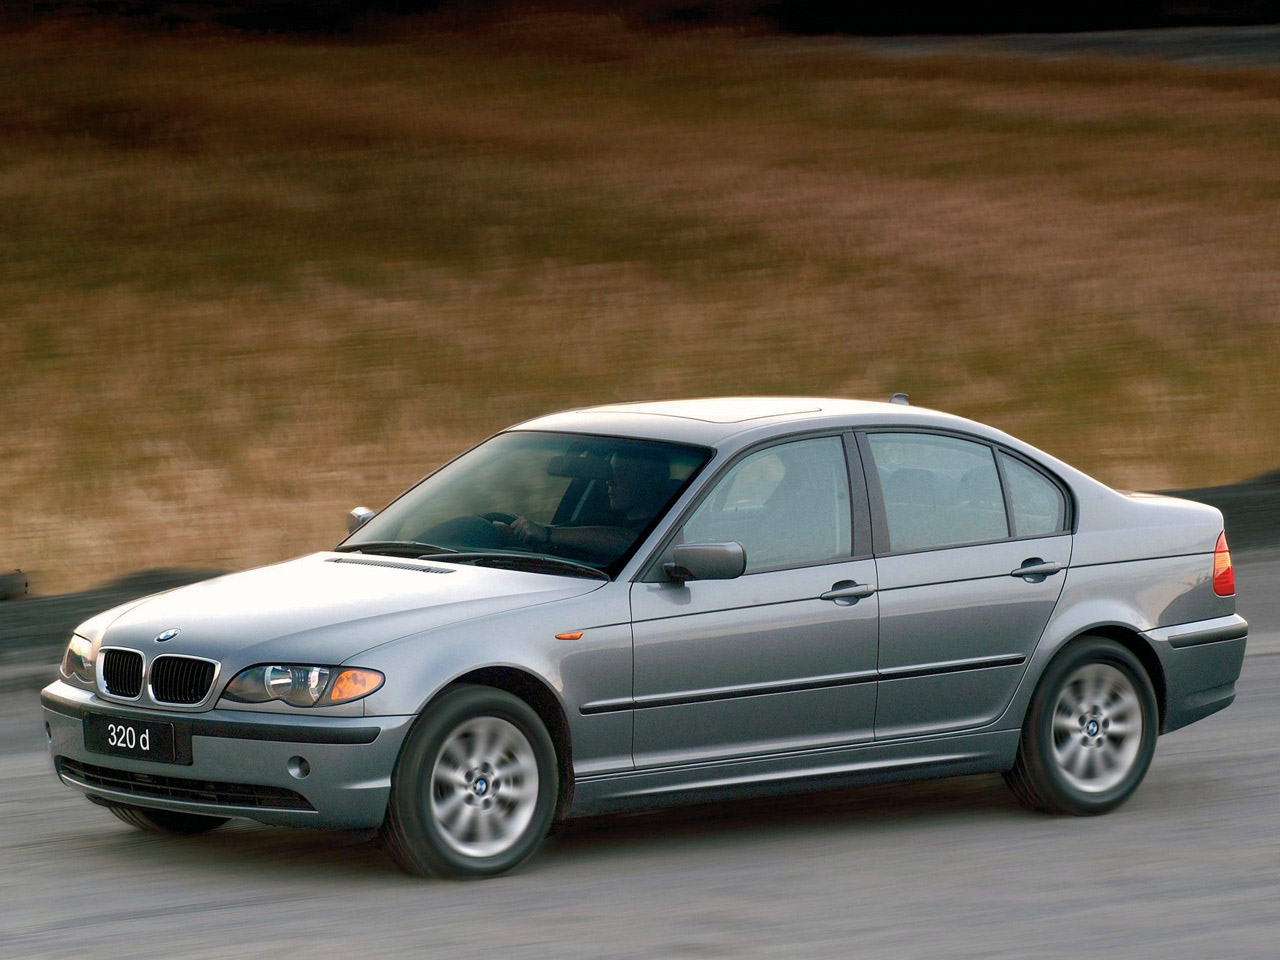 2001 bmw 3 series e46 pictures information and specs auto. Black Bedroom Furniture Sets. Home Design Ideas